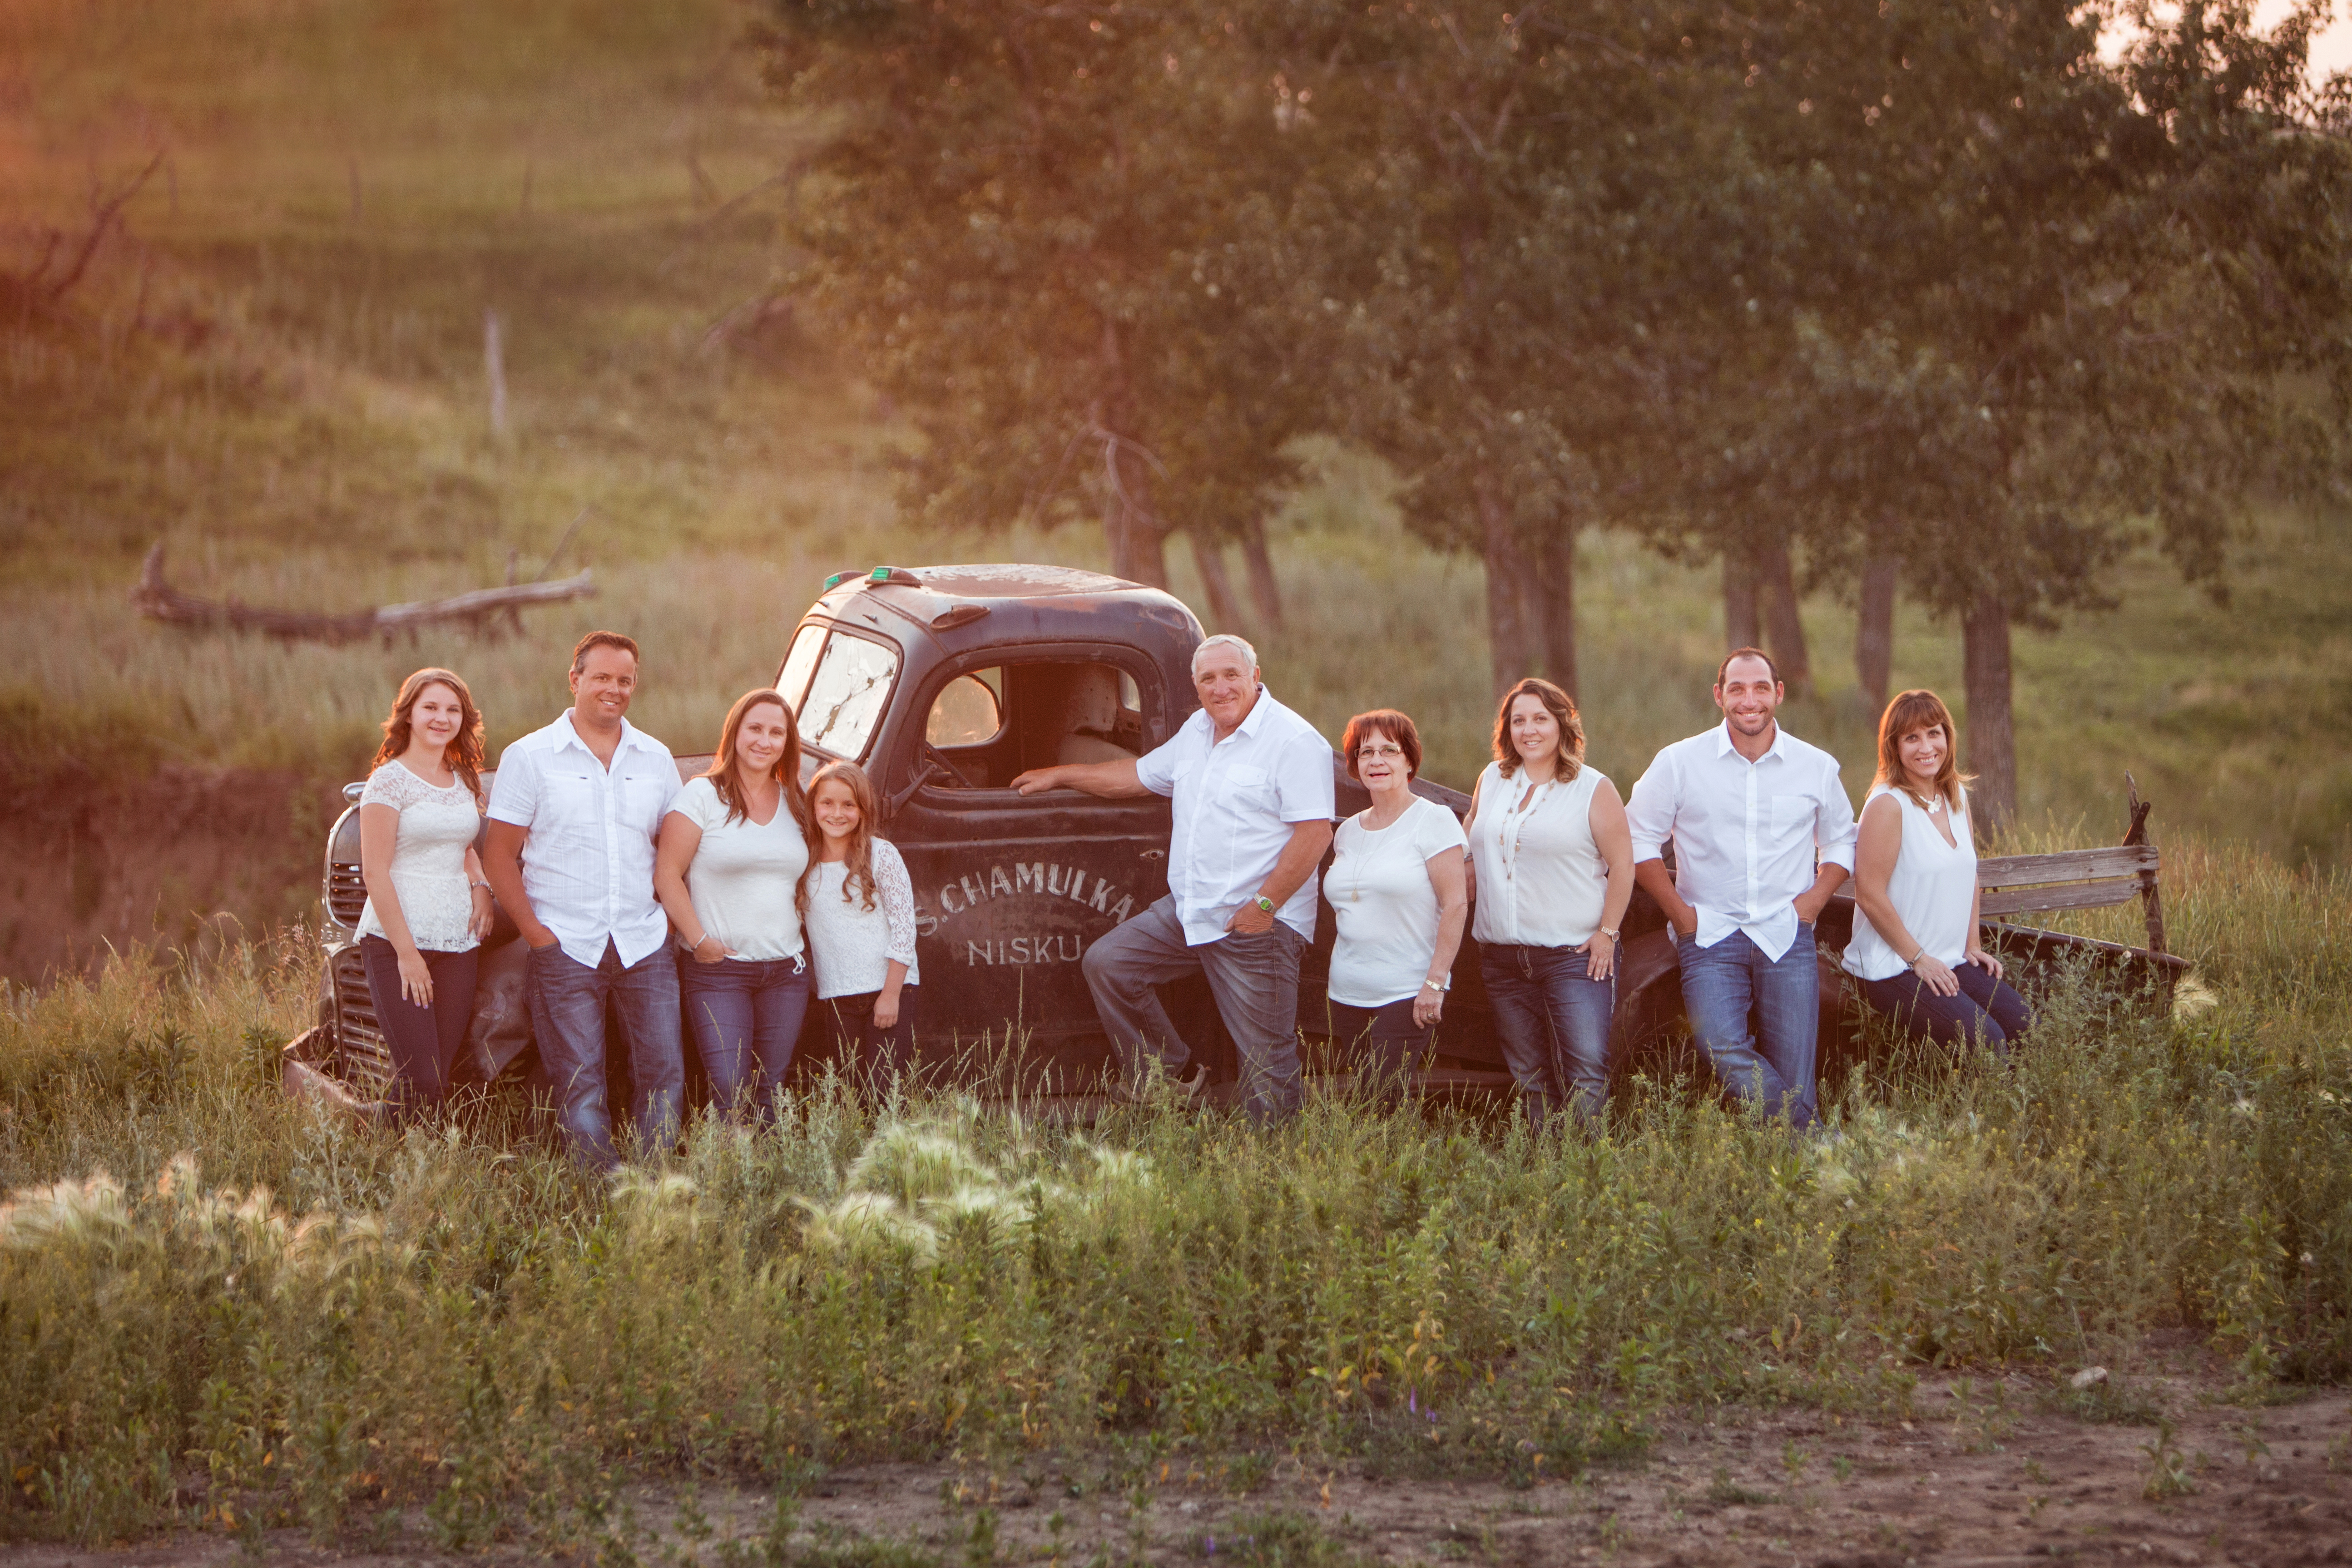 Extended family of nine in white tops and jeans standing in front of vintage truck